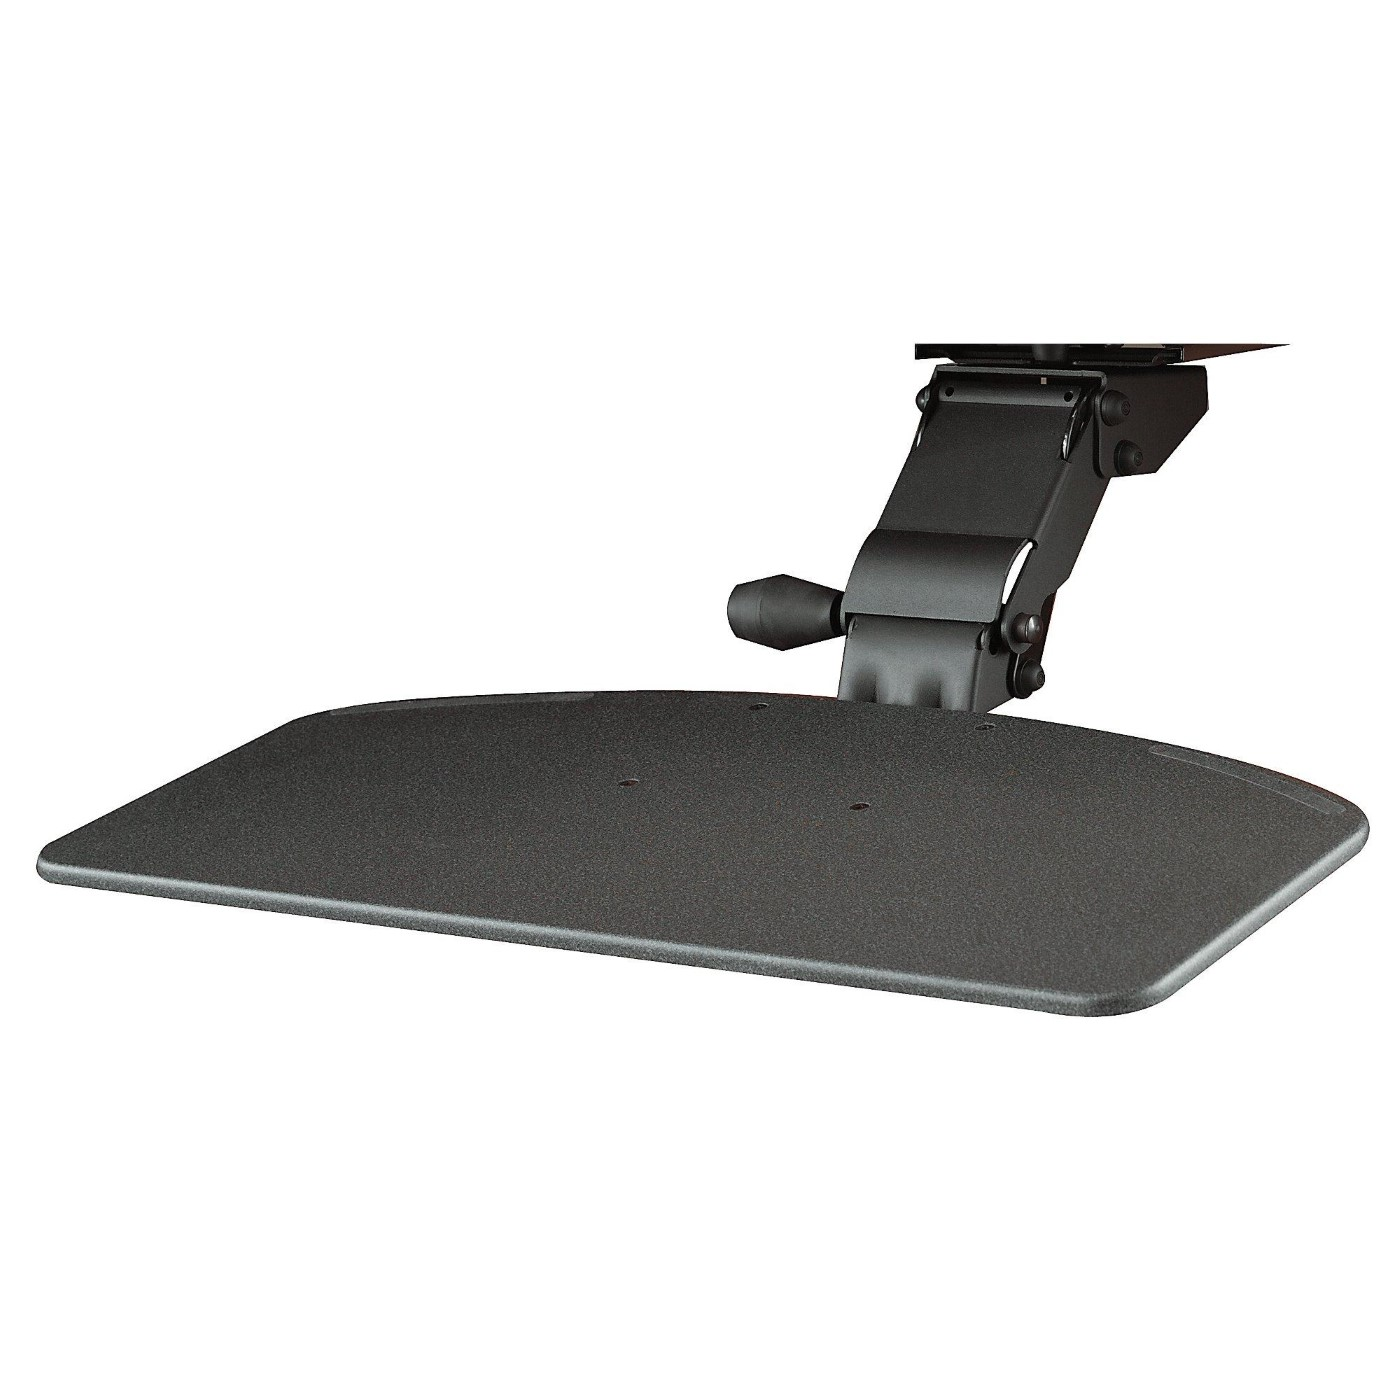 <font color=#c60><b>BUSH BUSINESS FURNITURE ARTICULATING KEYBOARD TRAY. FREE SHIPPING</font></b>